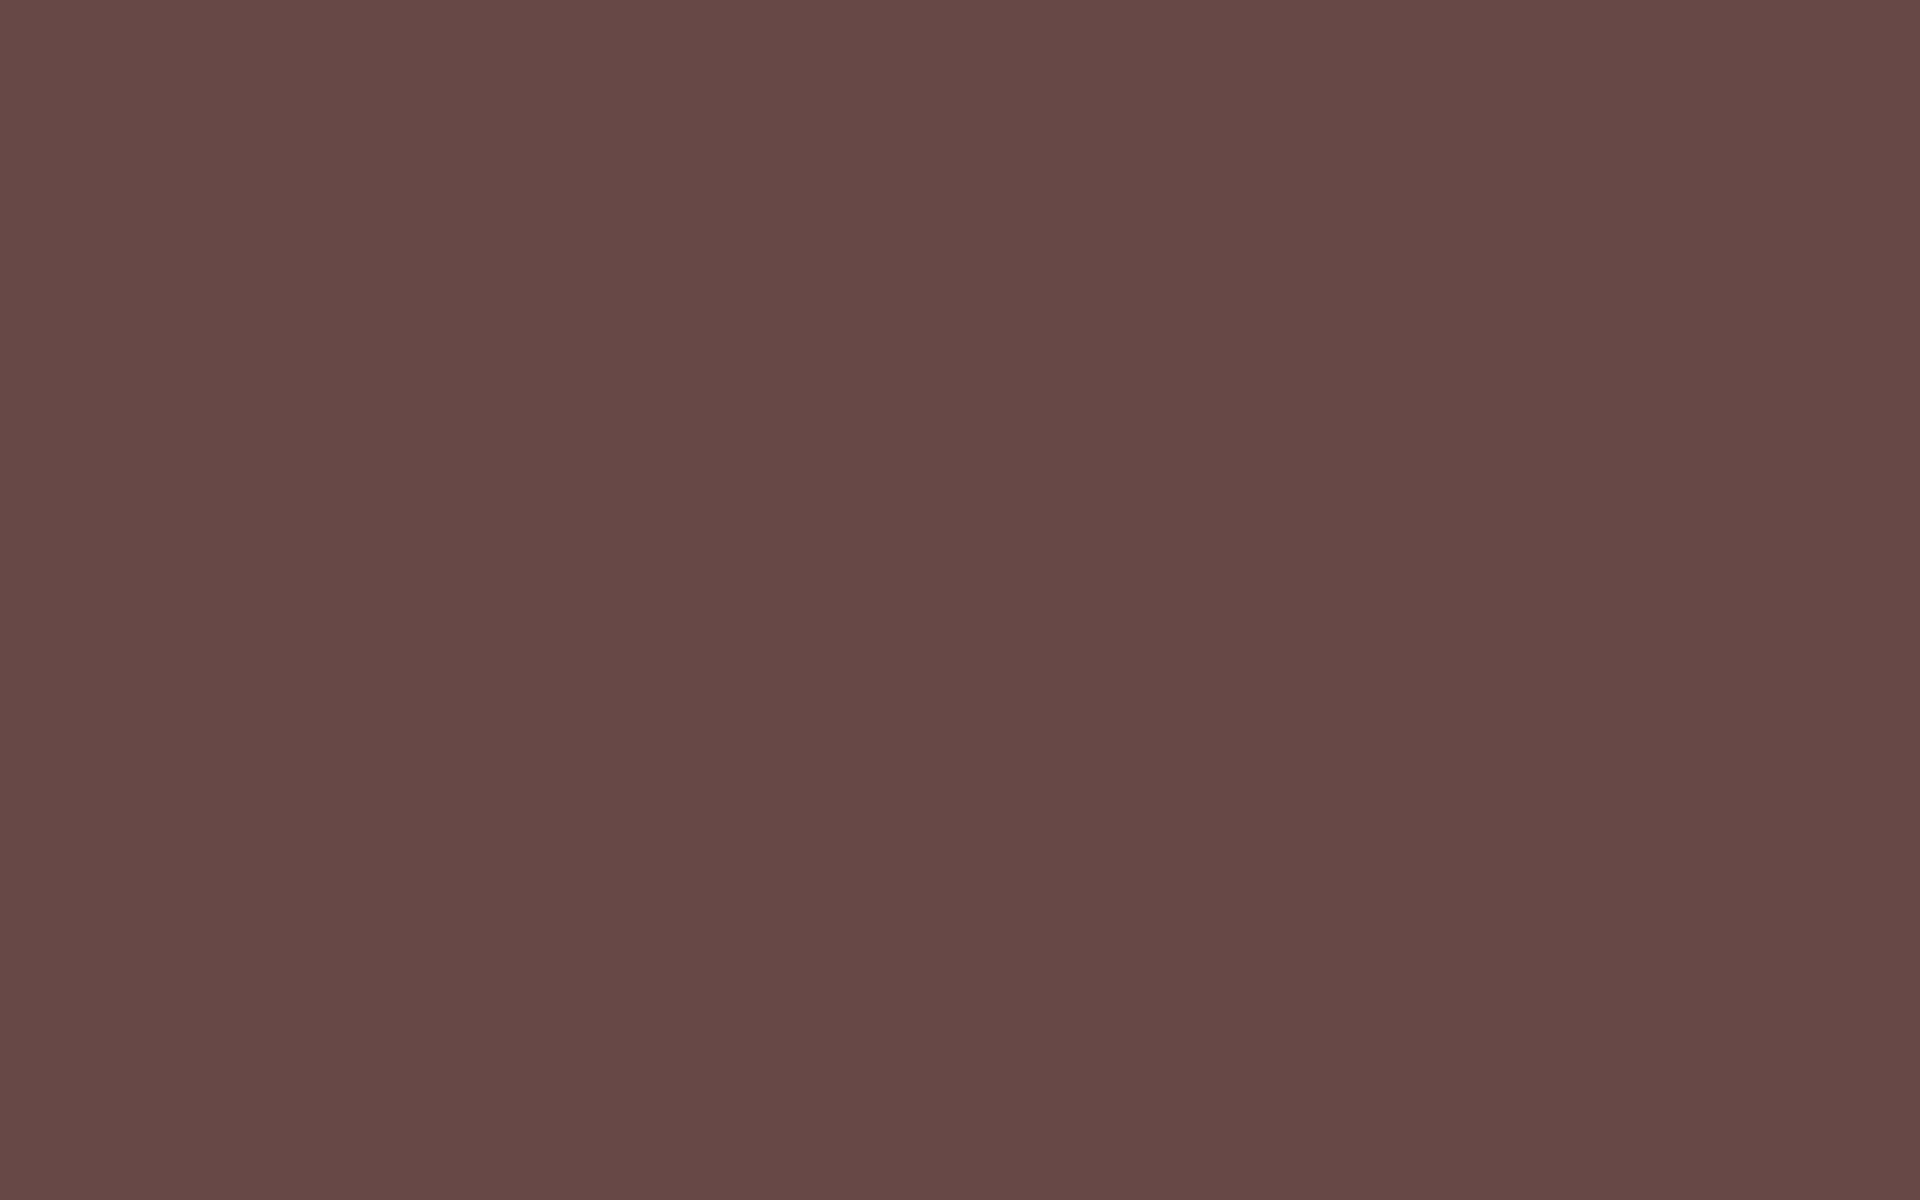 1920x1200 Rose Ebony Solid Color Background